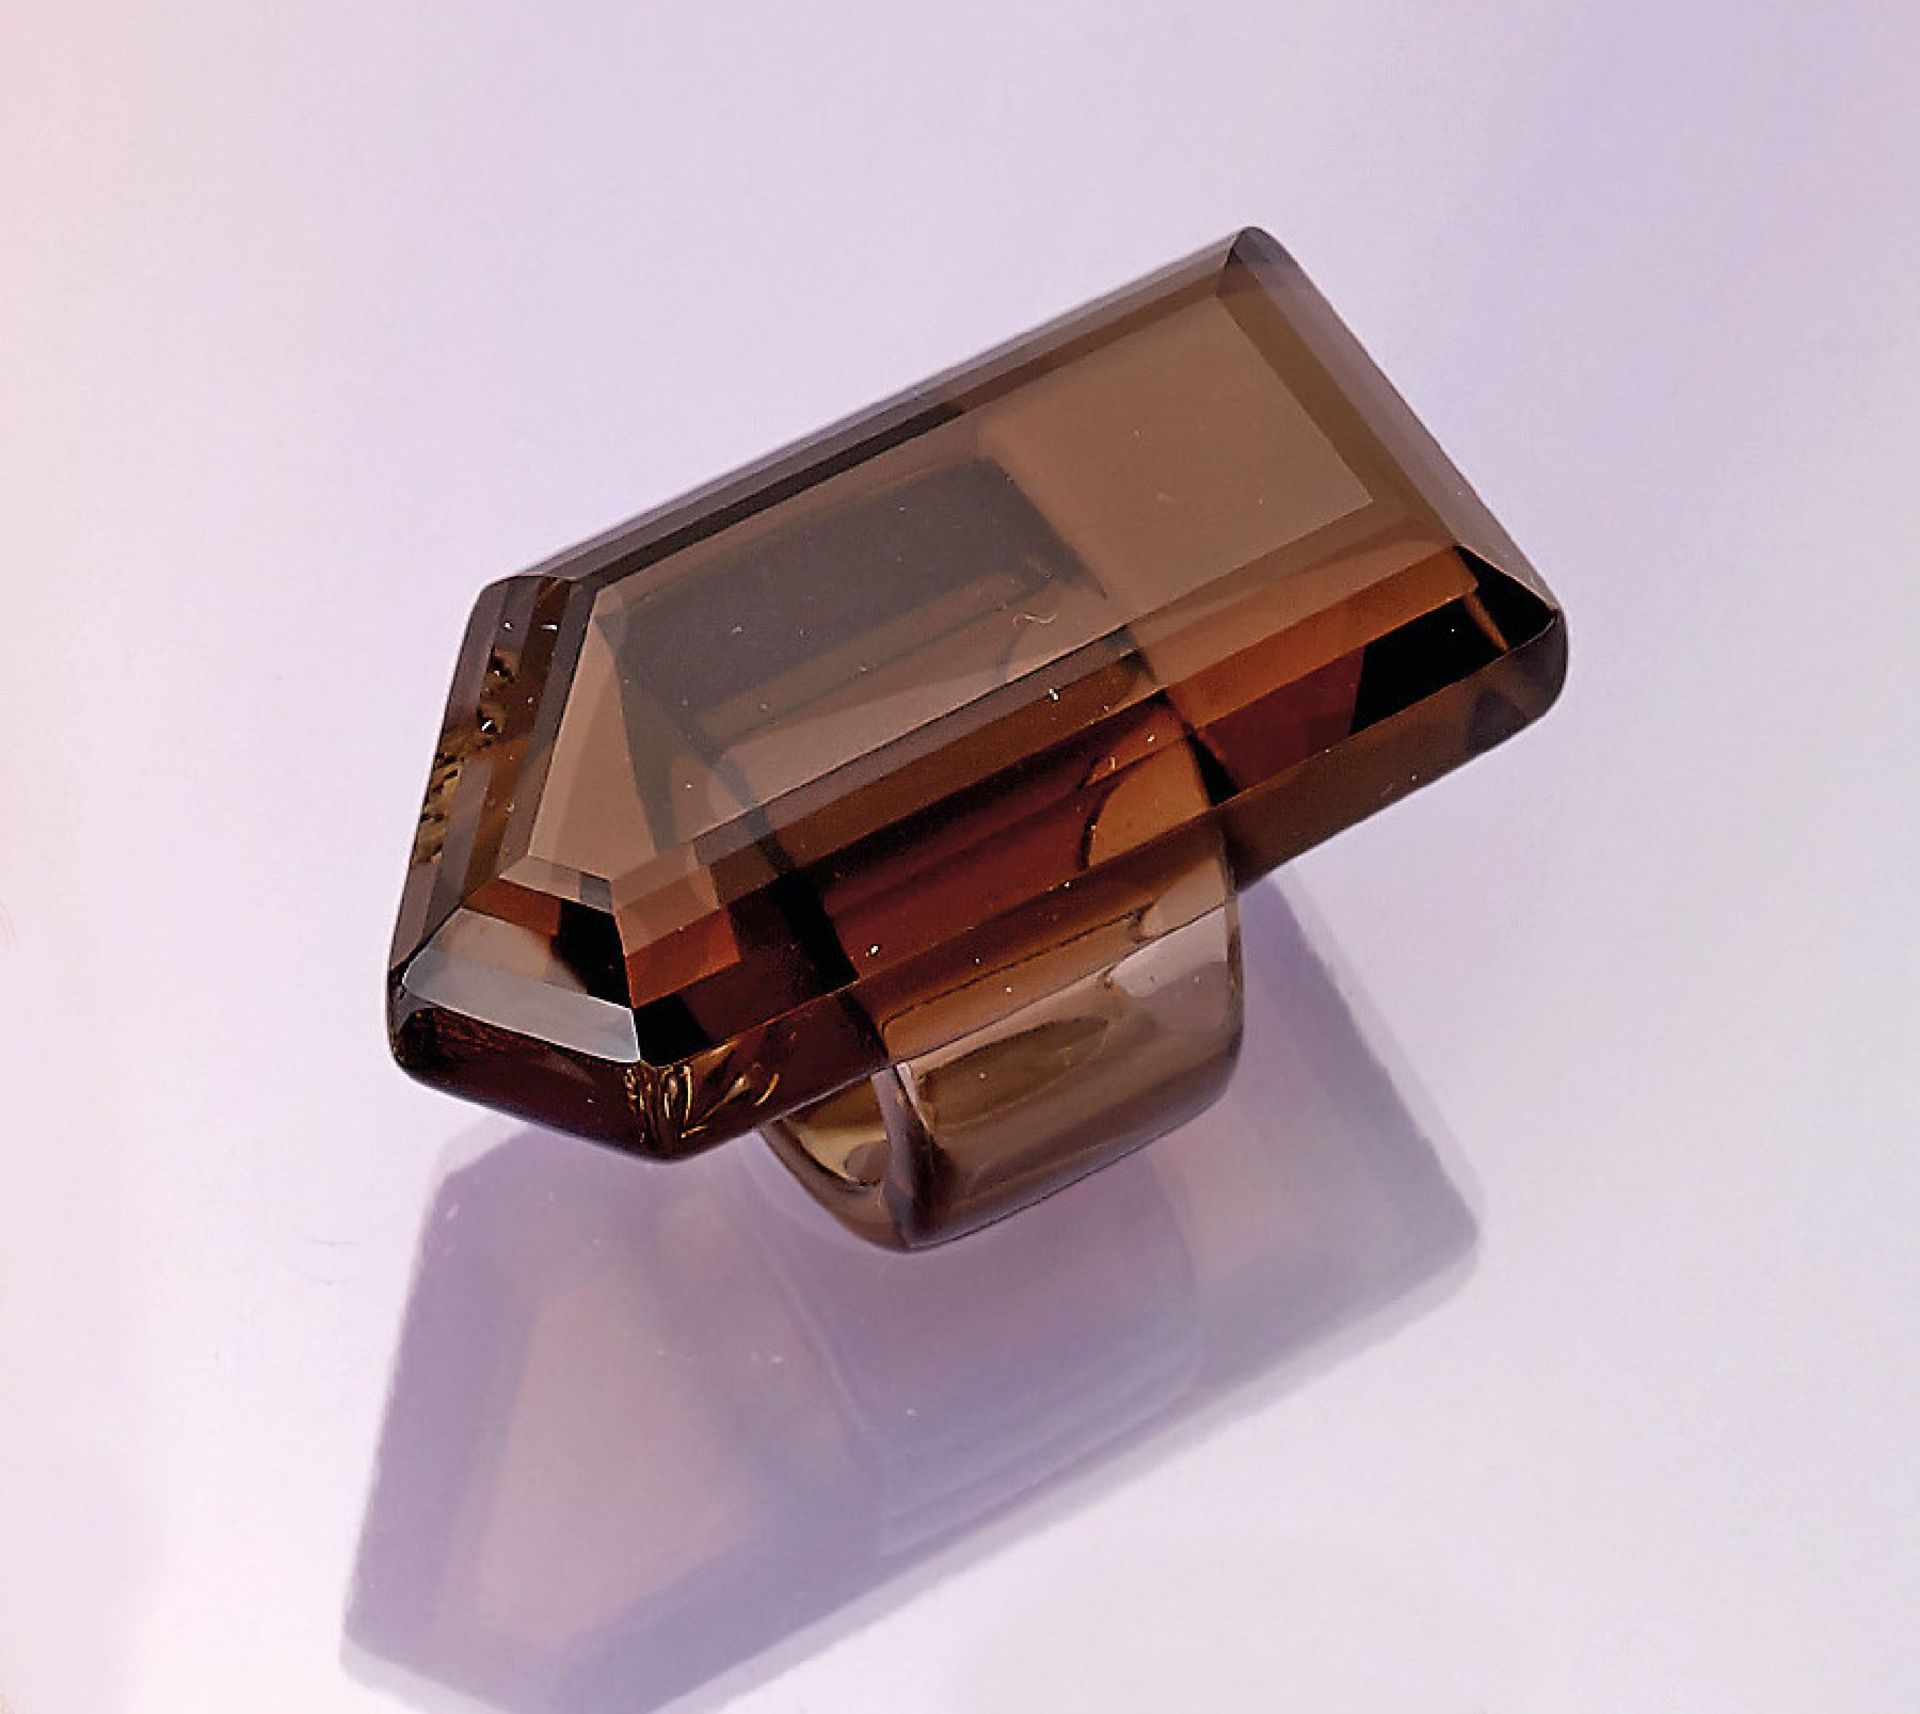 Los 31522 - Smoky quartz ring, ringsize 51 , approx. 49.5 g, approx. 247,00 ct, approx. 52 x 37 mm,out of one